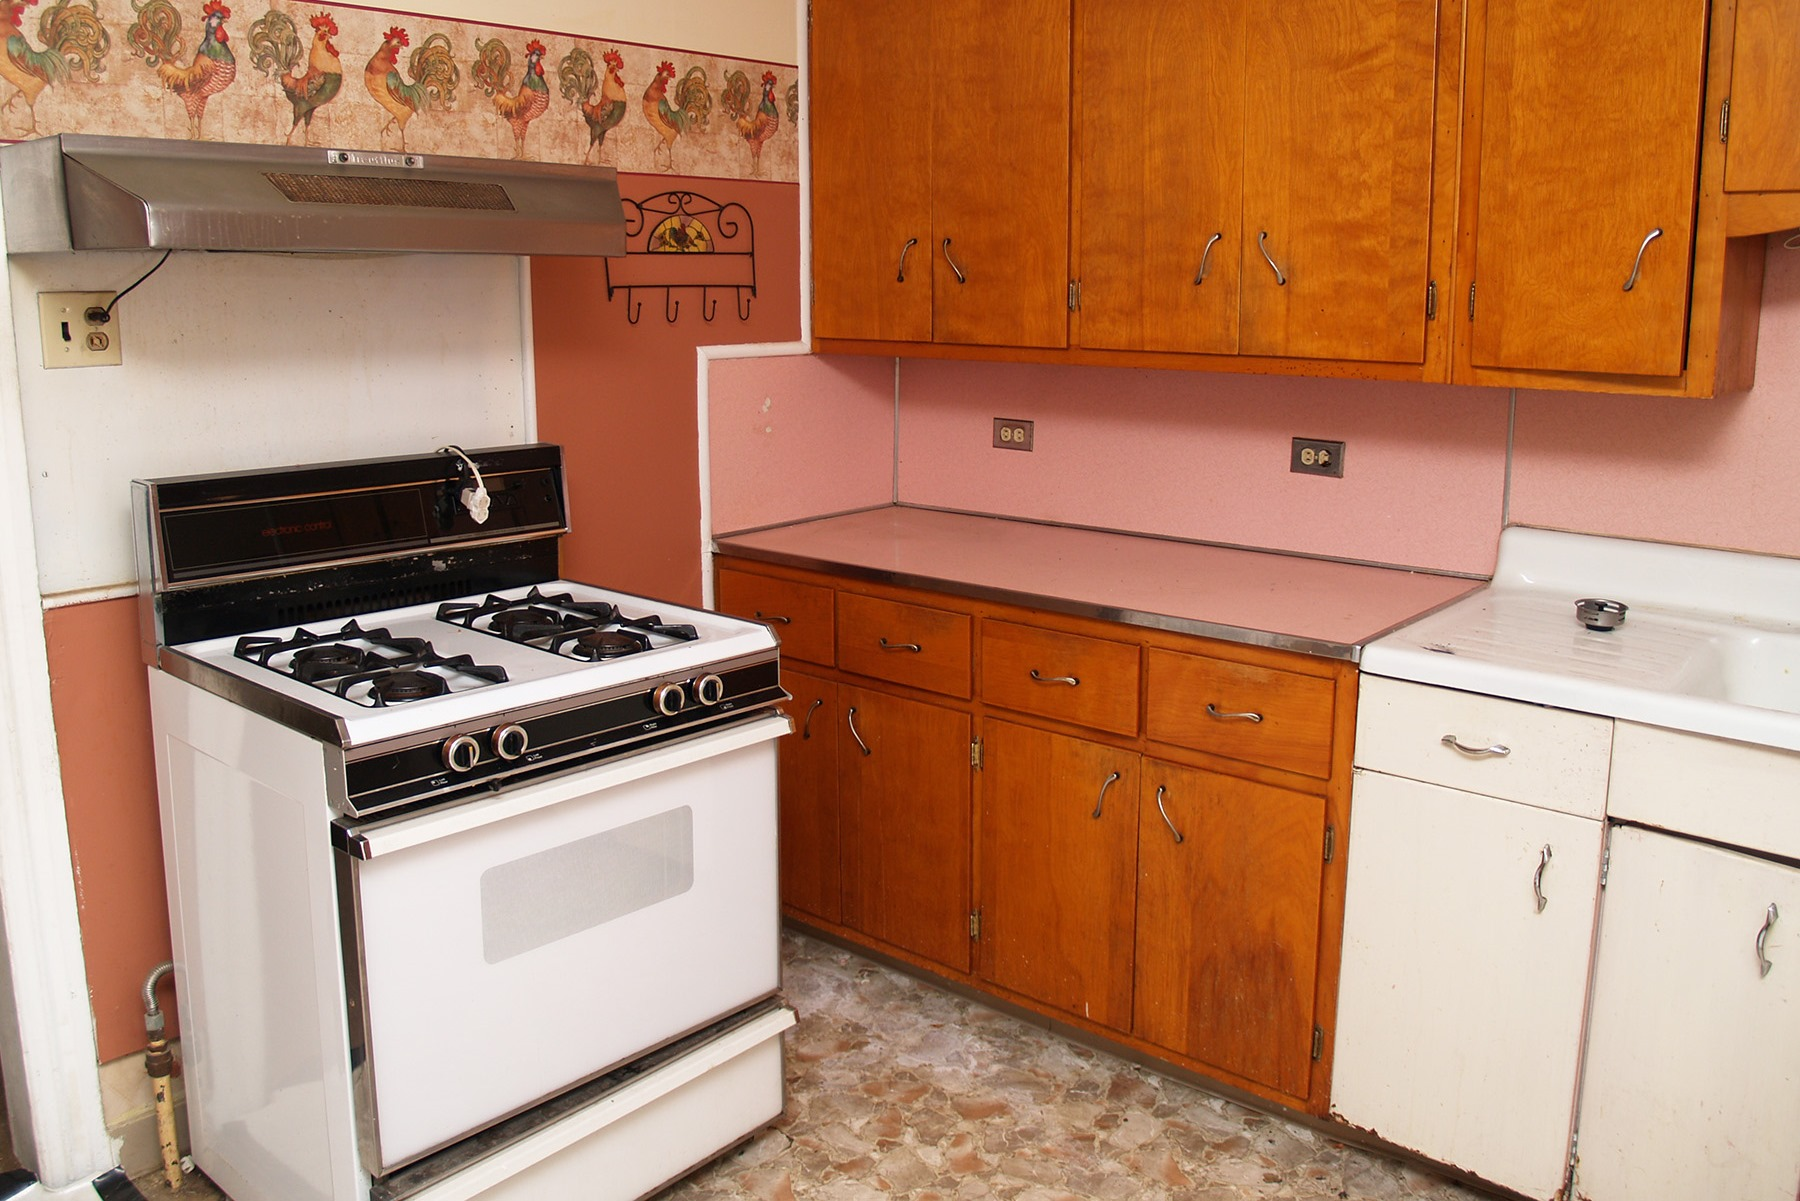 How Countertops Have Changed In The Last 50 Years